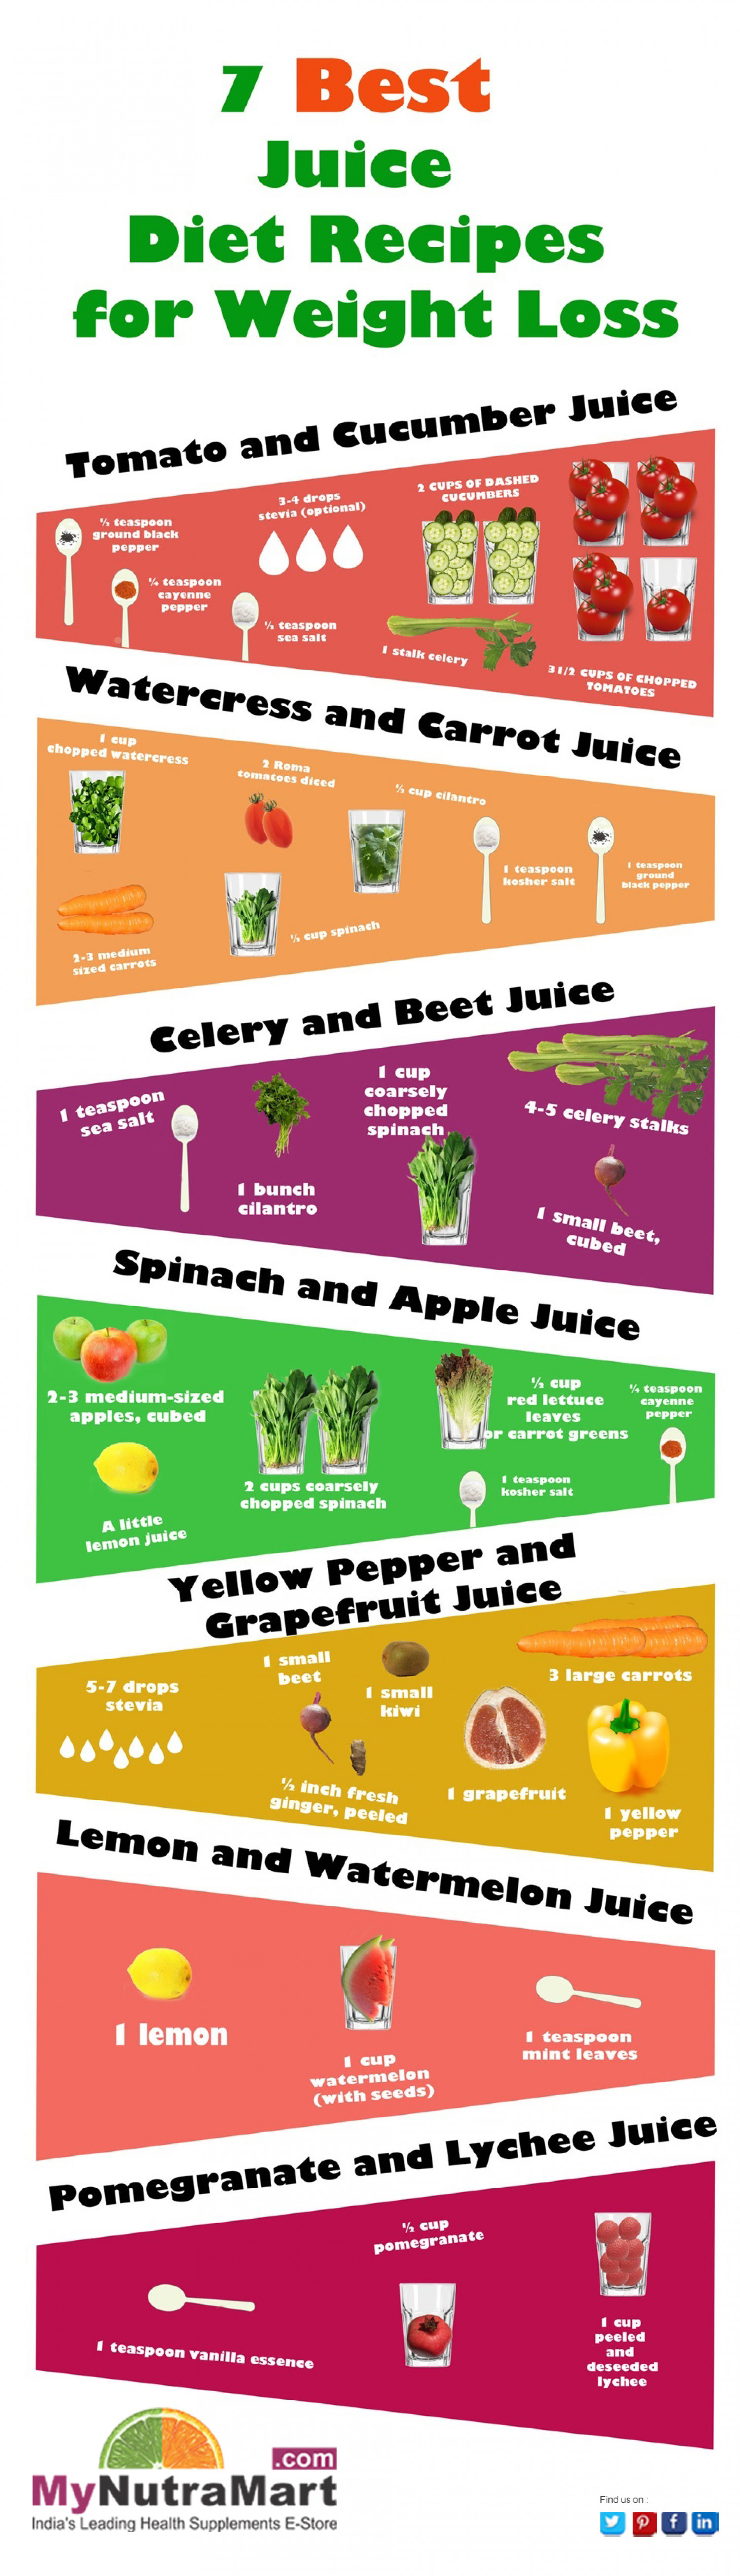 Best Juice Diet Recipes For Weight Loss Infographic